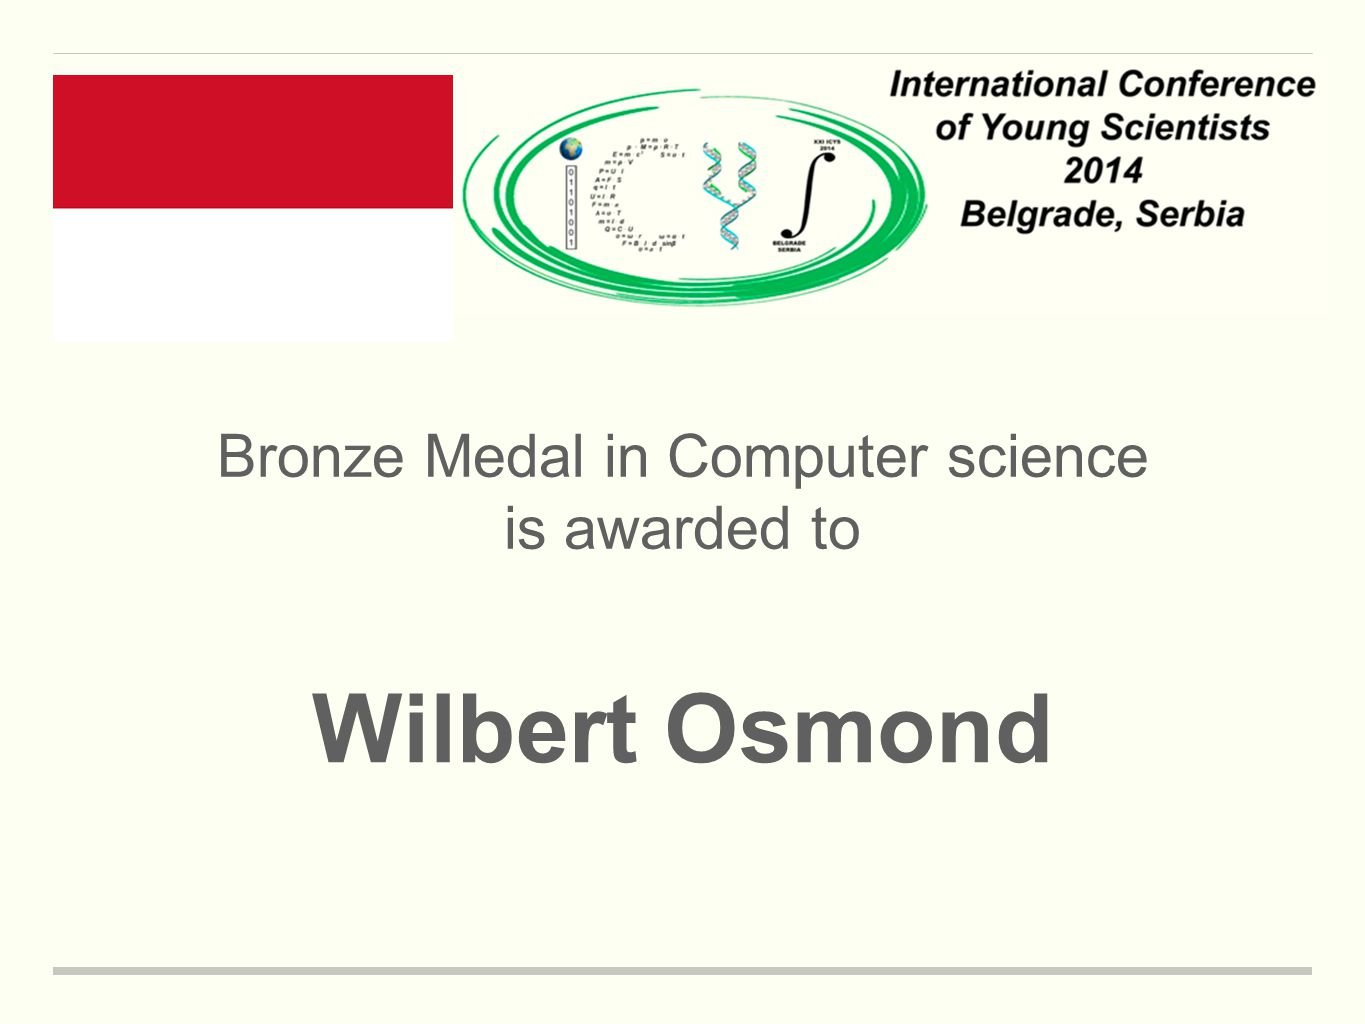 Bronze Medal in Computer science is awarded to Wilbert Osmond